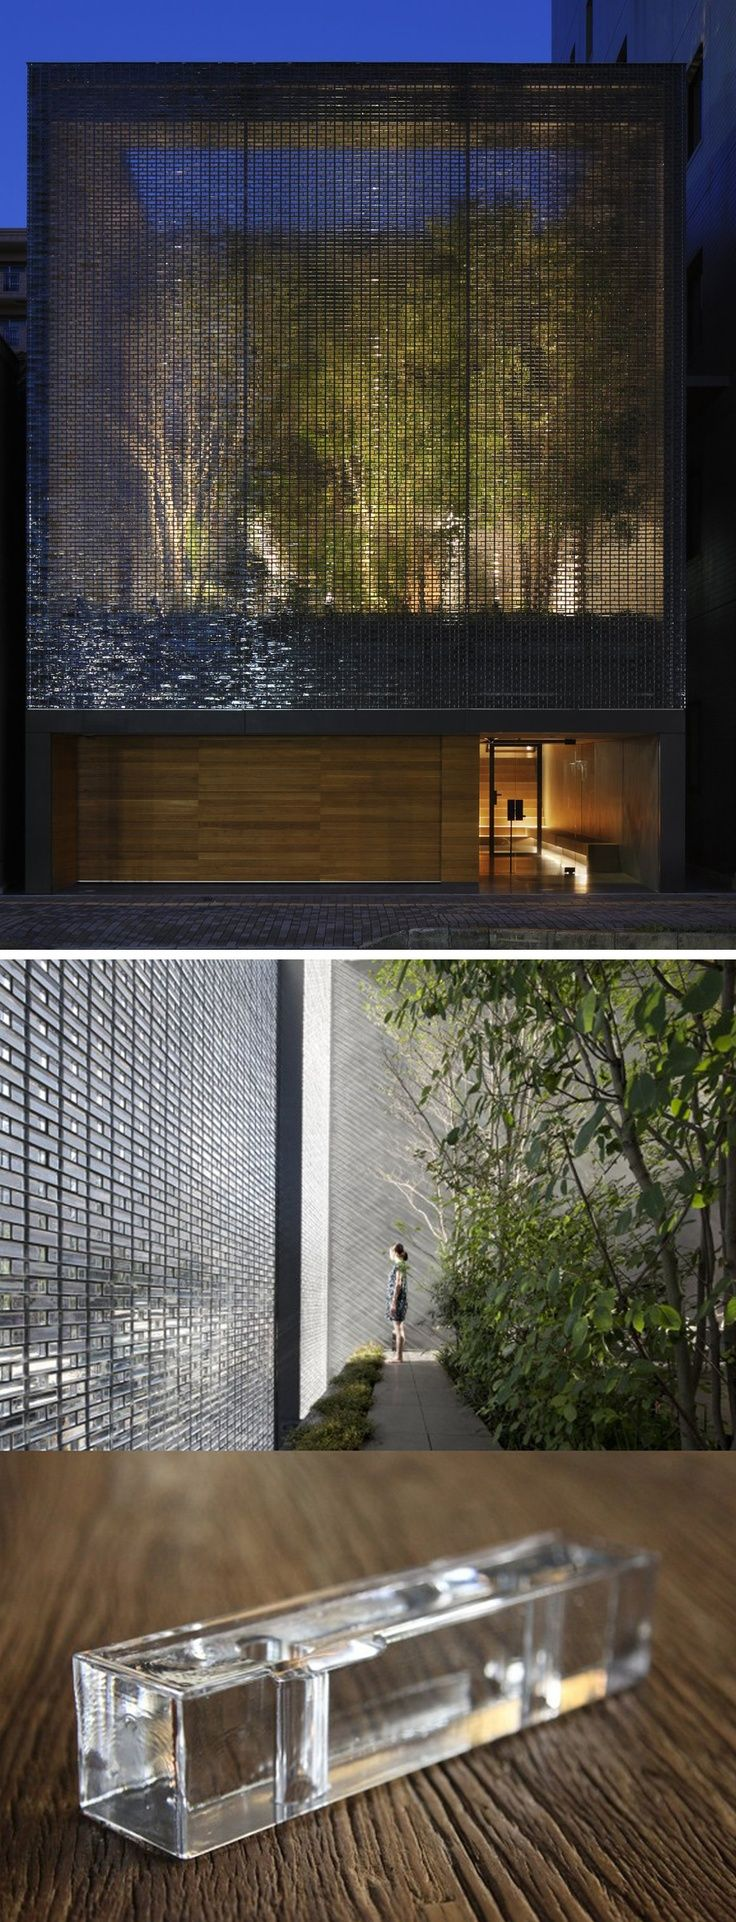 Nakamura's Optical Glass House is composed of roughly 6000 glass blocks strung together by stainless steel. The soundproof blocks not only cancel out the bustling cars and trams but they also create a façade that functions much like an urban noren -allowing light and air to pass through while revealing only a mosaic of the lush garden inside